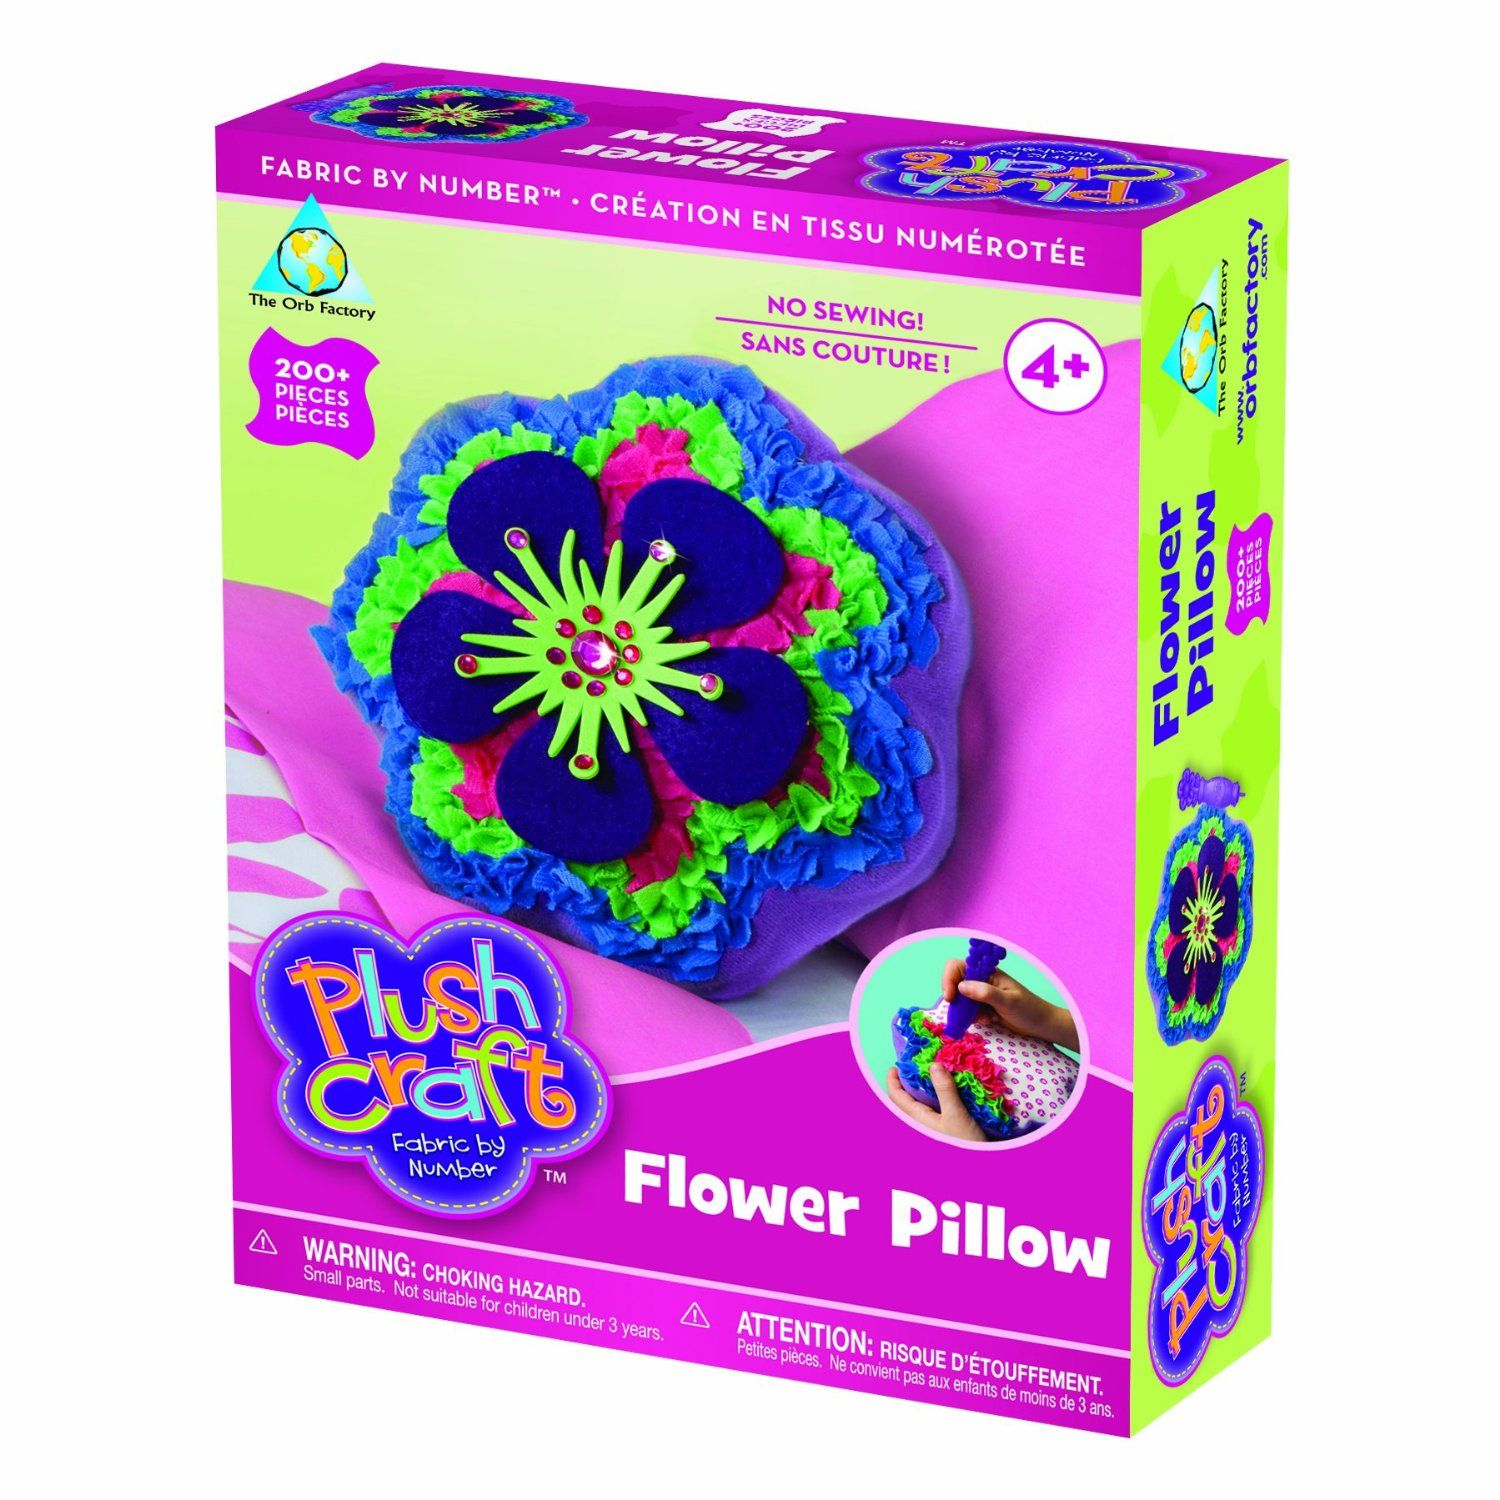 The Orb Factory Limited Plush Craft Flower Pillow 1 Flower Pillow 1 Stylus 200 Fabric Pieces 1 Button Connecto Plush Craft Flower Pillow Flower Crafts